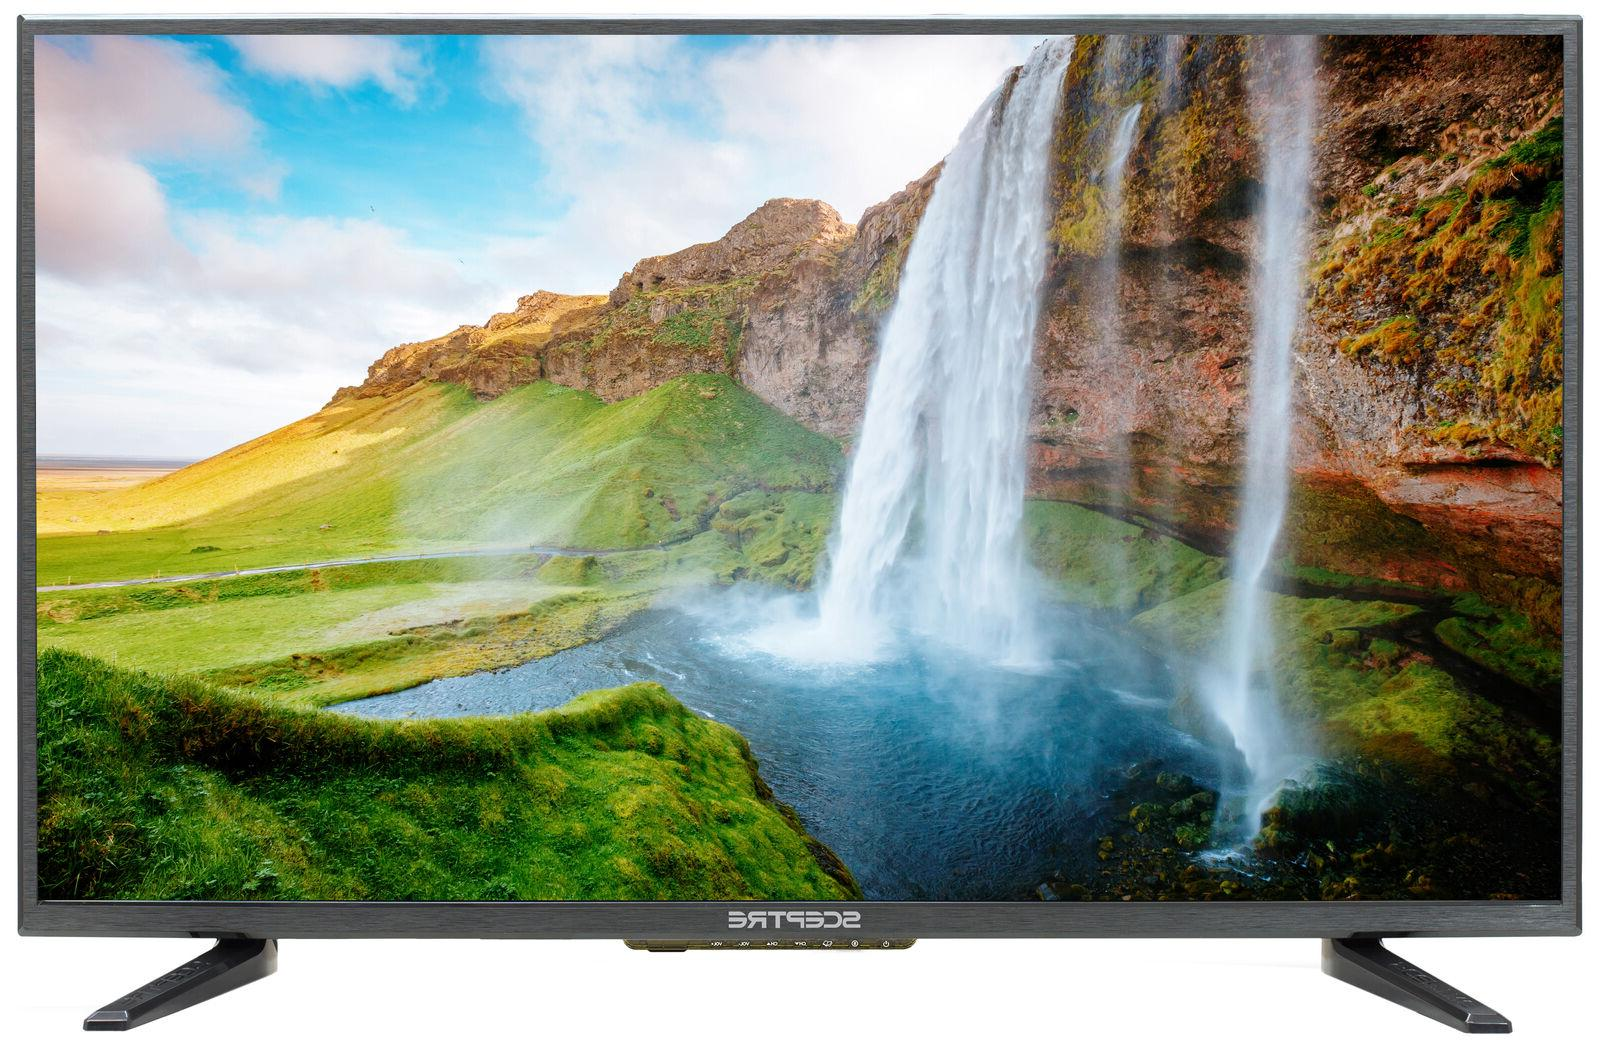 "New Sceptre 32"" Class HD 720P LED TV Flat Screen HDMI USB Ho"